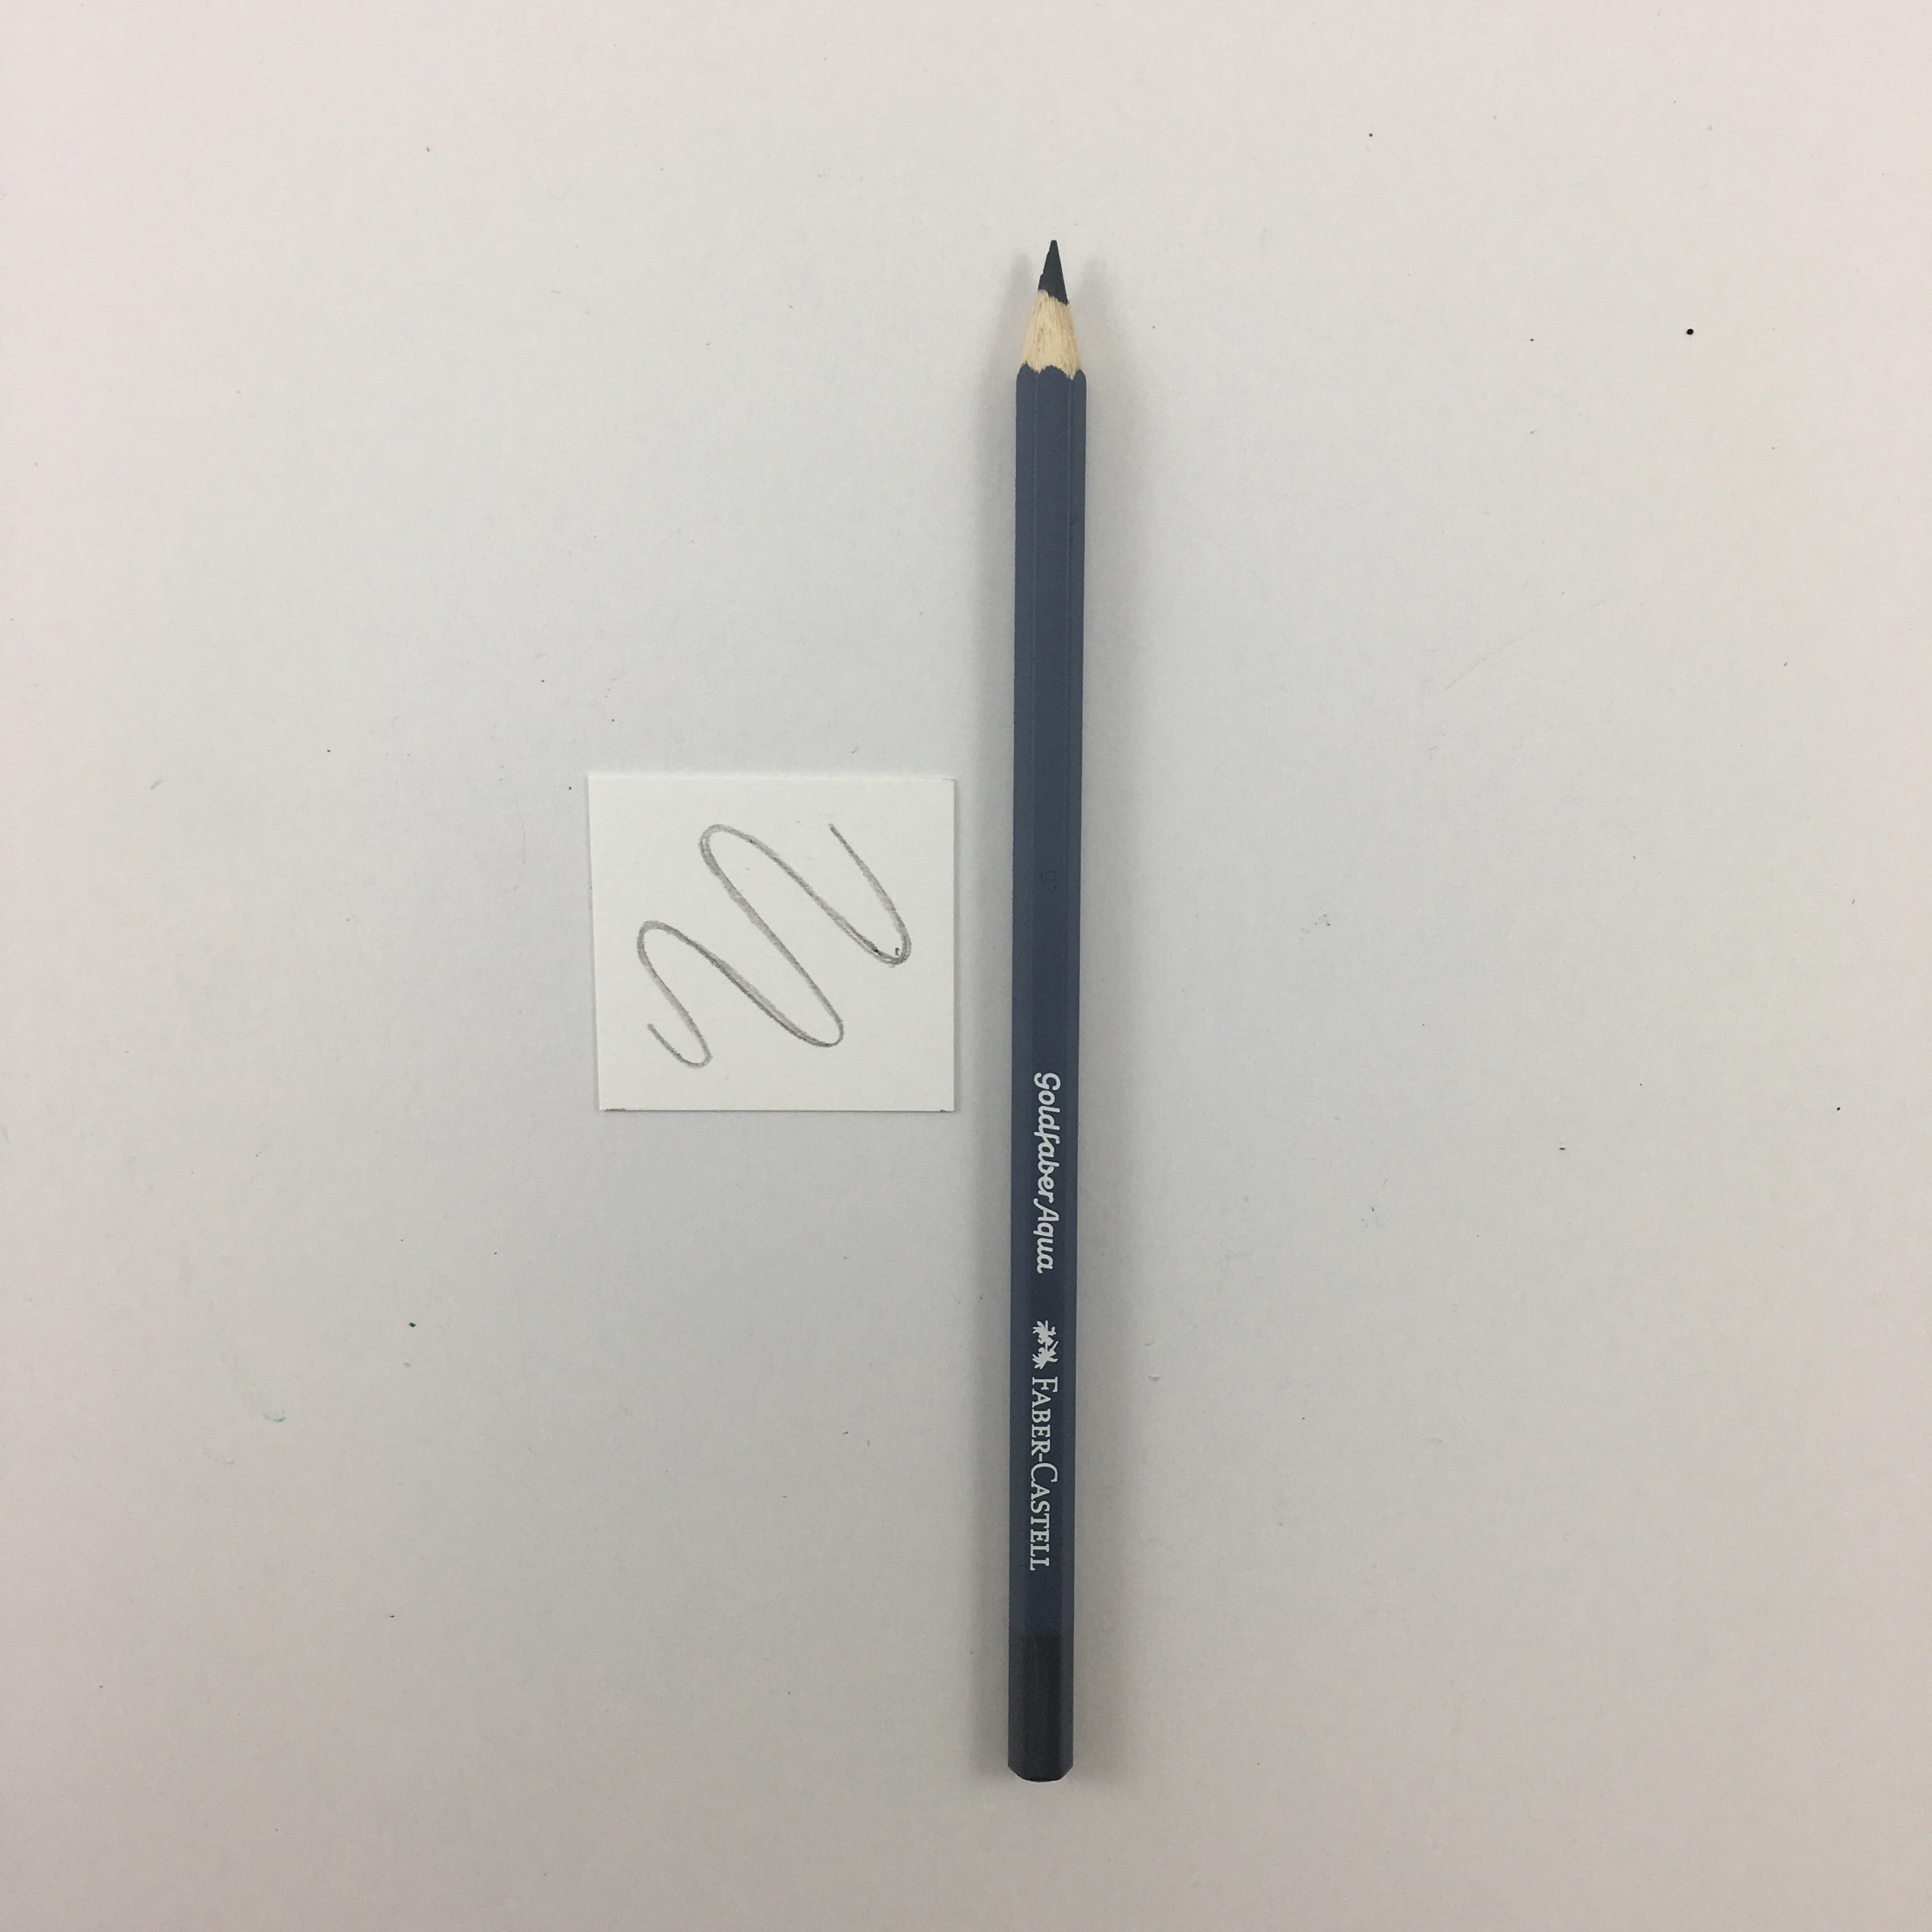 Faber-Castell Goldfaber Aqua Watercolor Pencils - Individuals - 233 - Cold Gray IV by Faber-Castell - K. A. Artist Shop